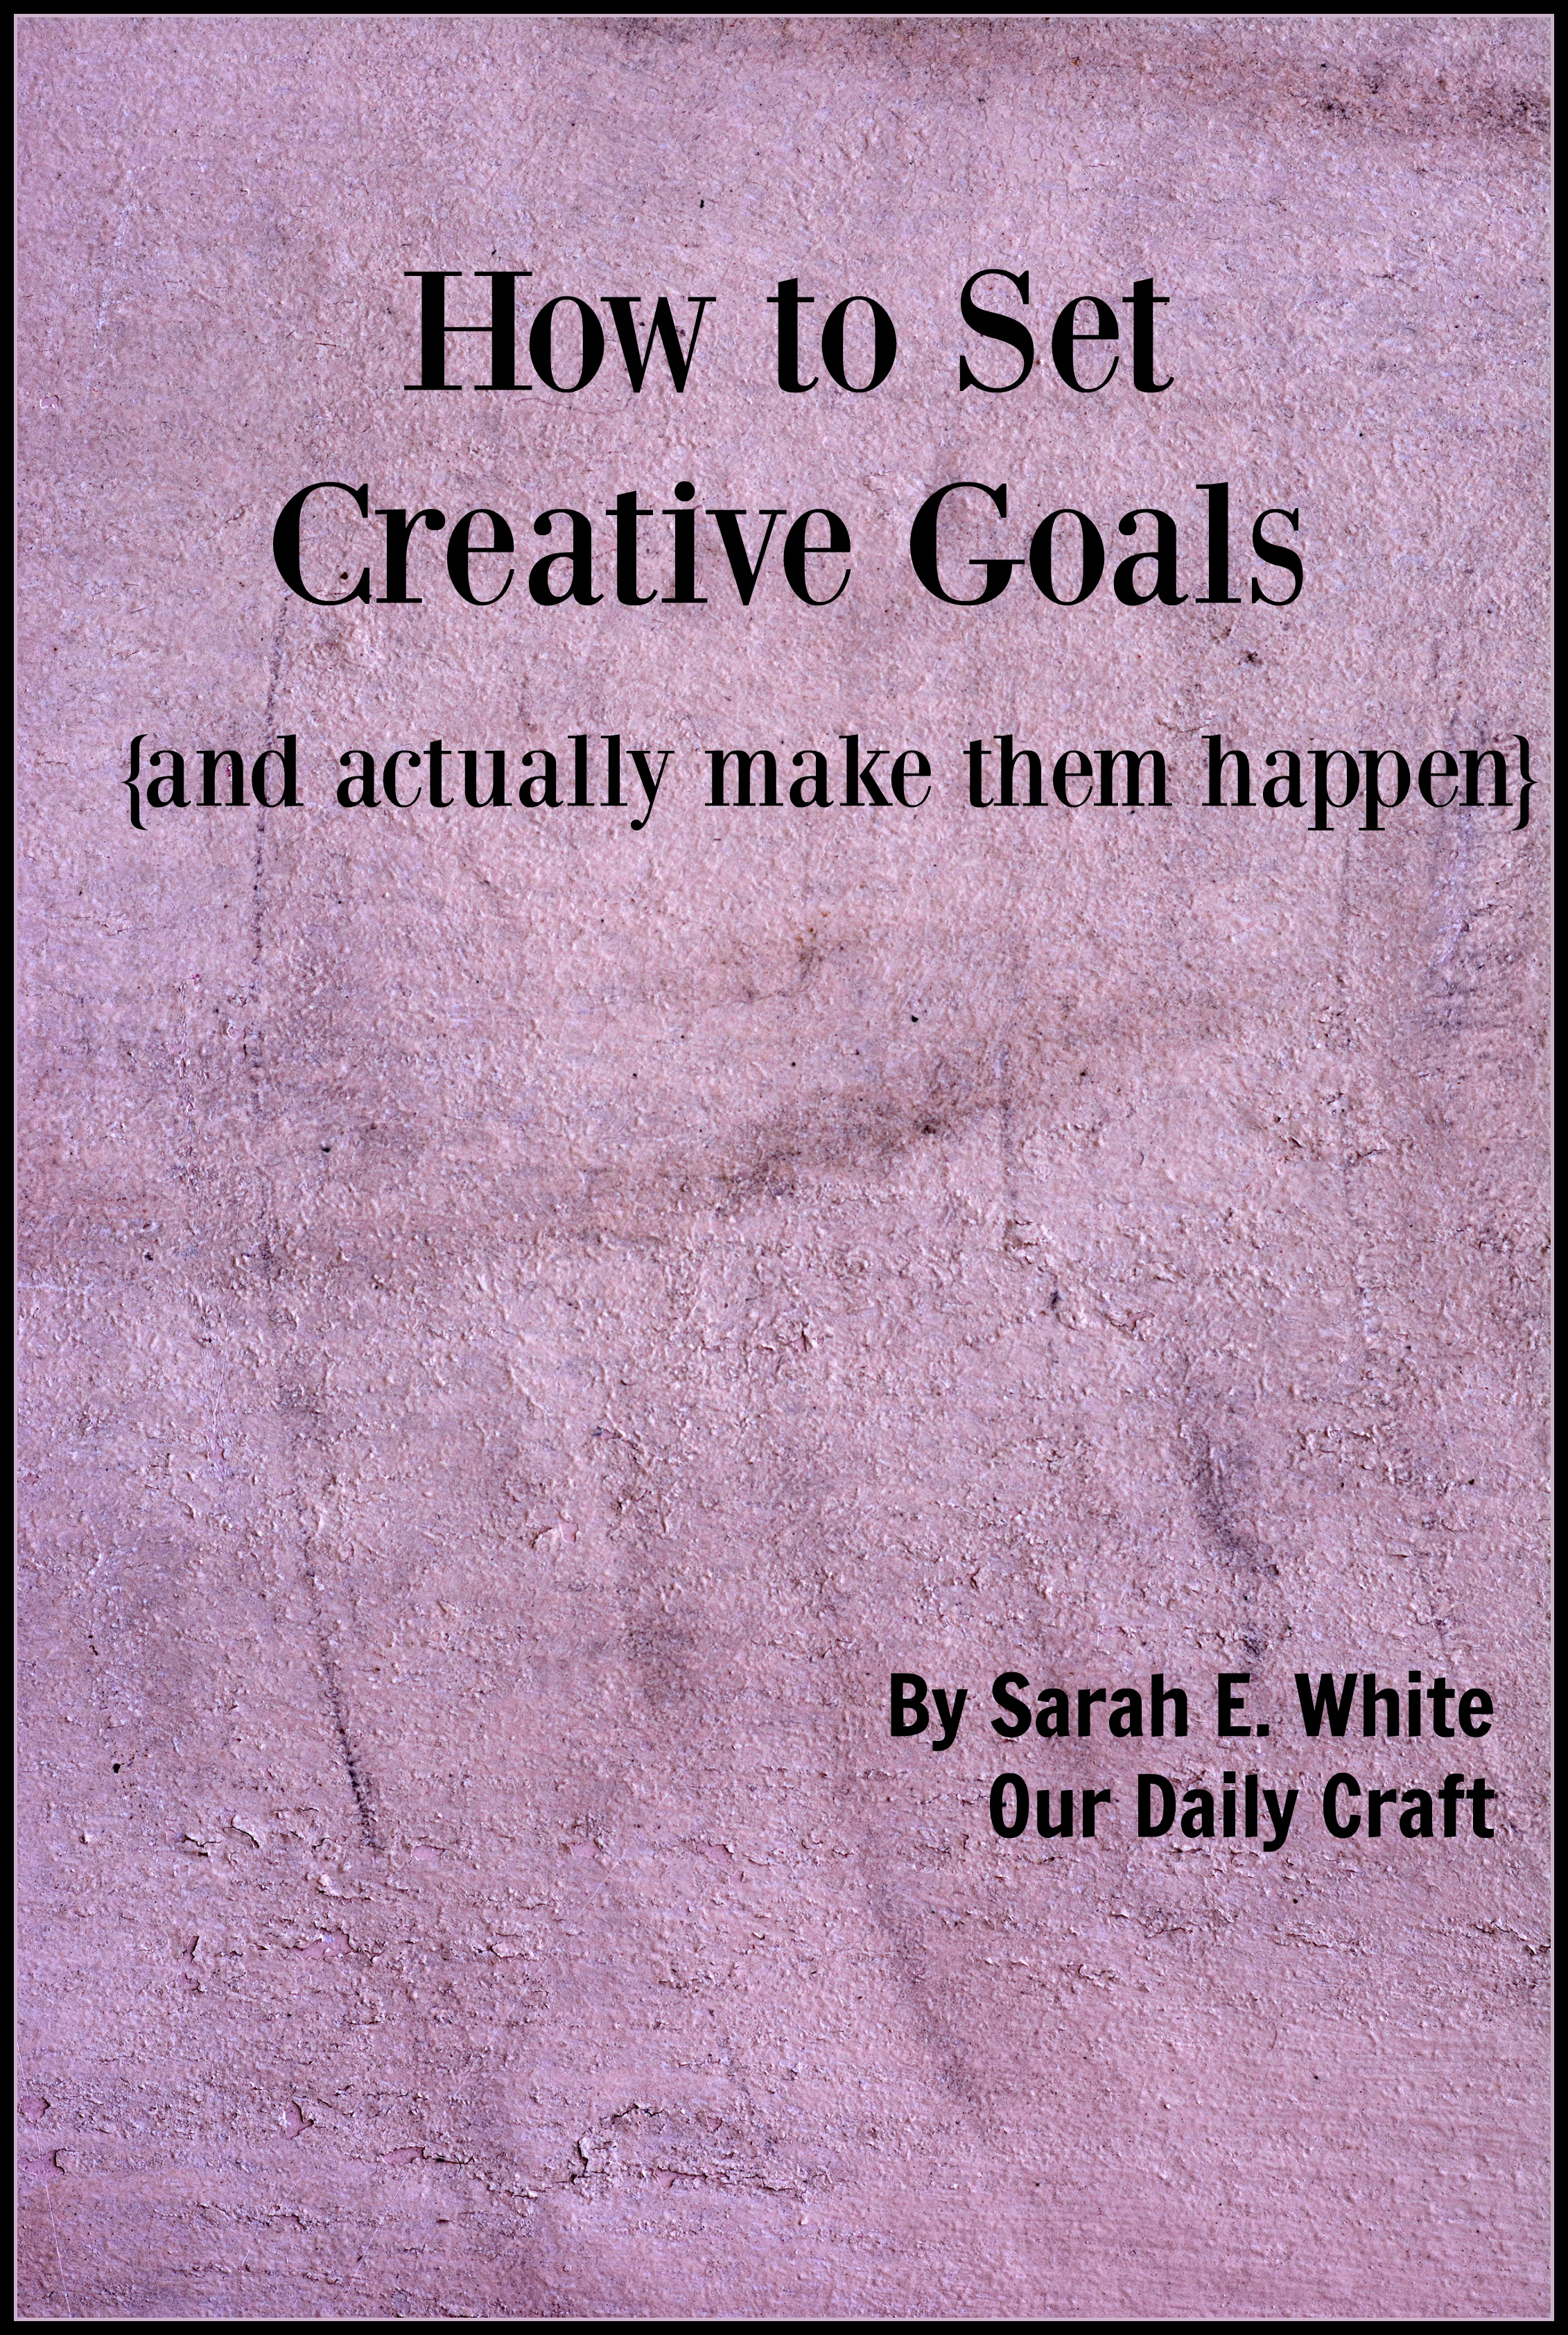 How to Set Creative Goals and Actually Make Them Happen